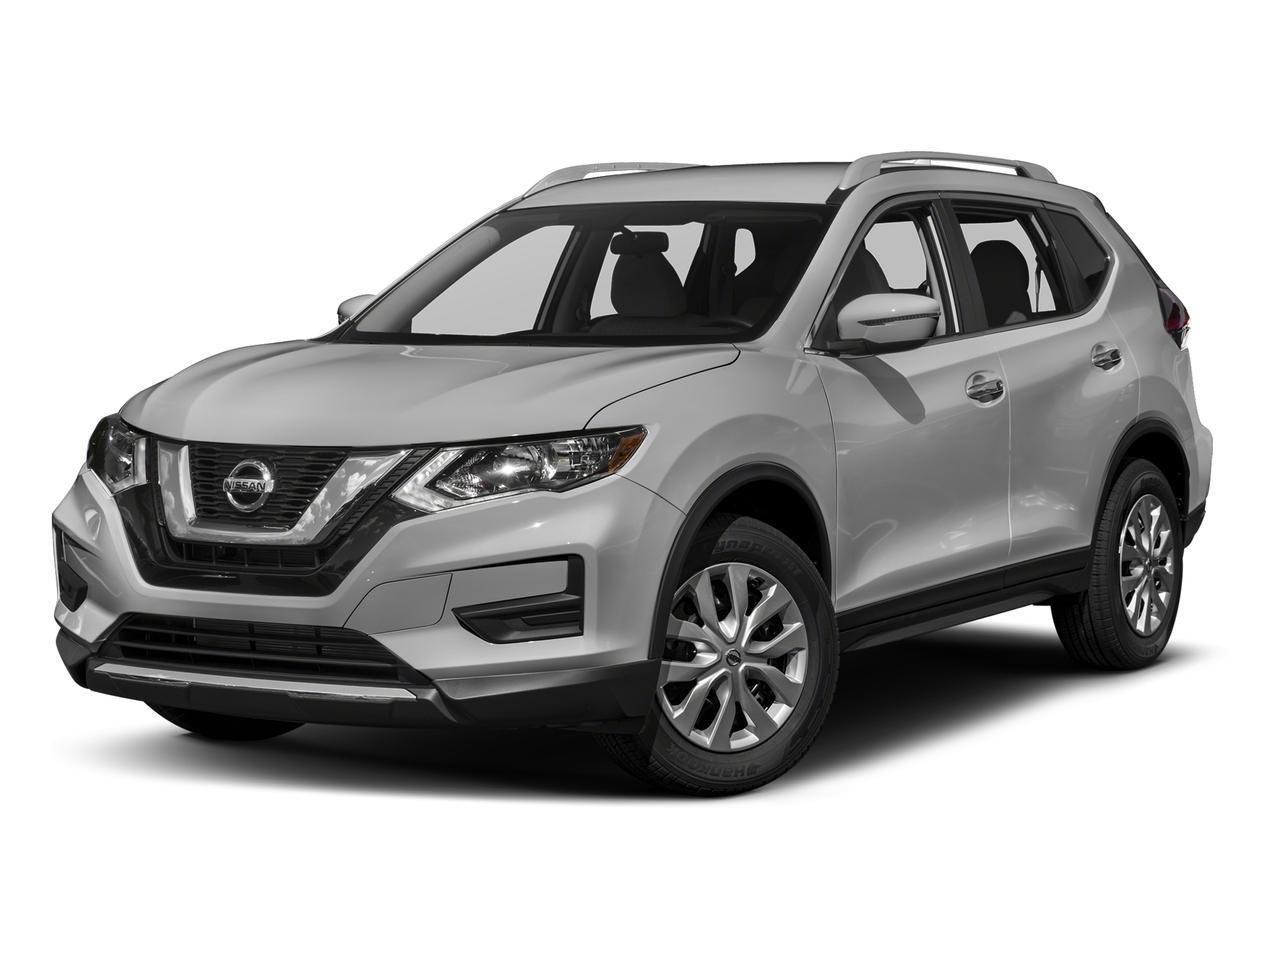 2017 Nissan Rogue Vehicle Photo in Jenkintown, PA 19046